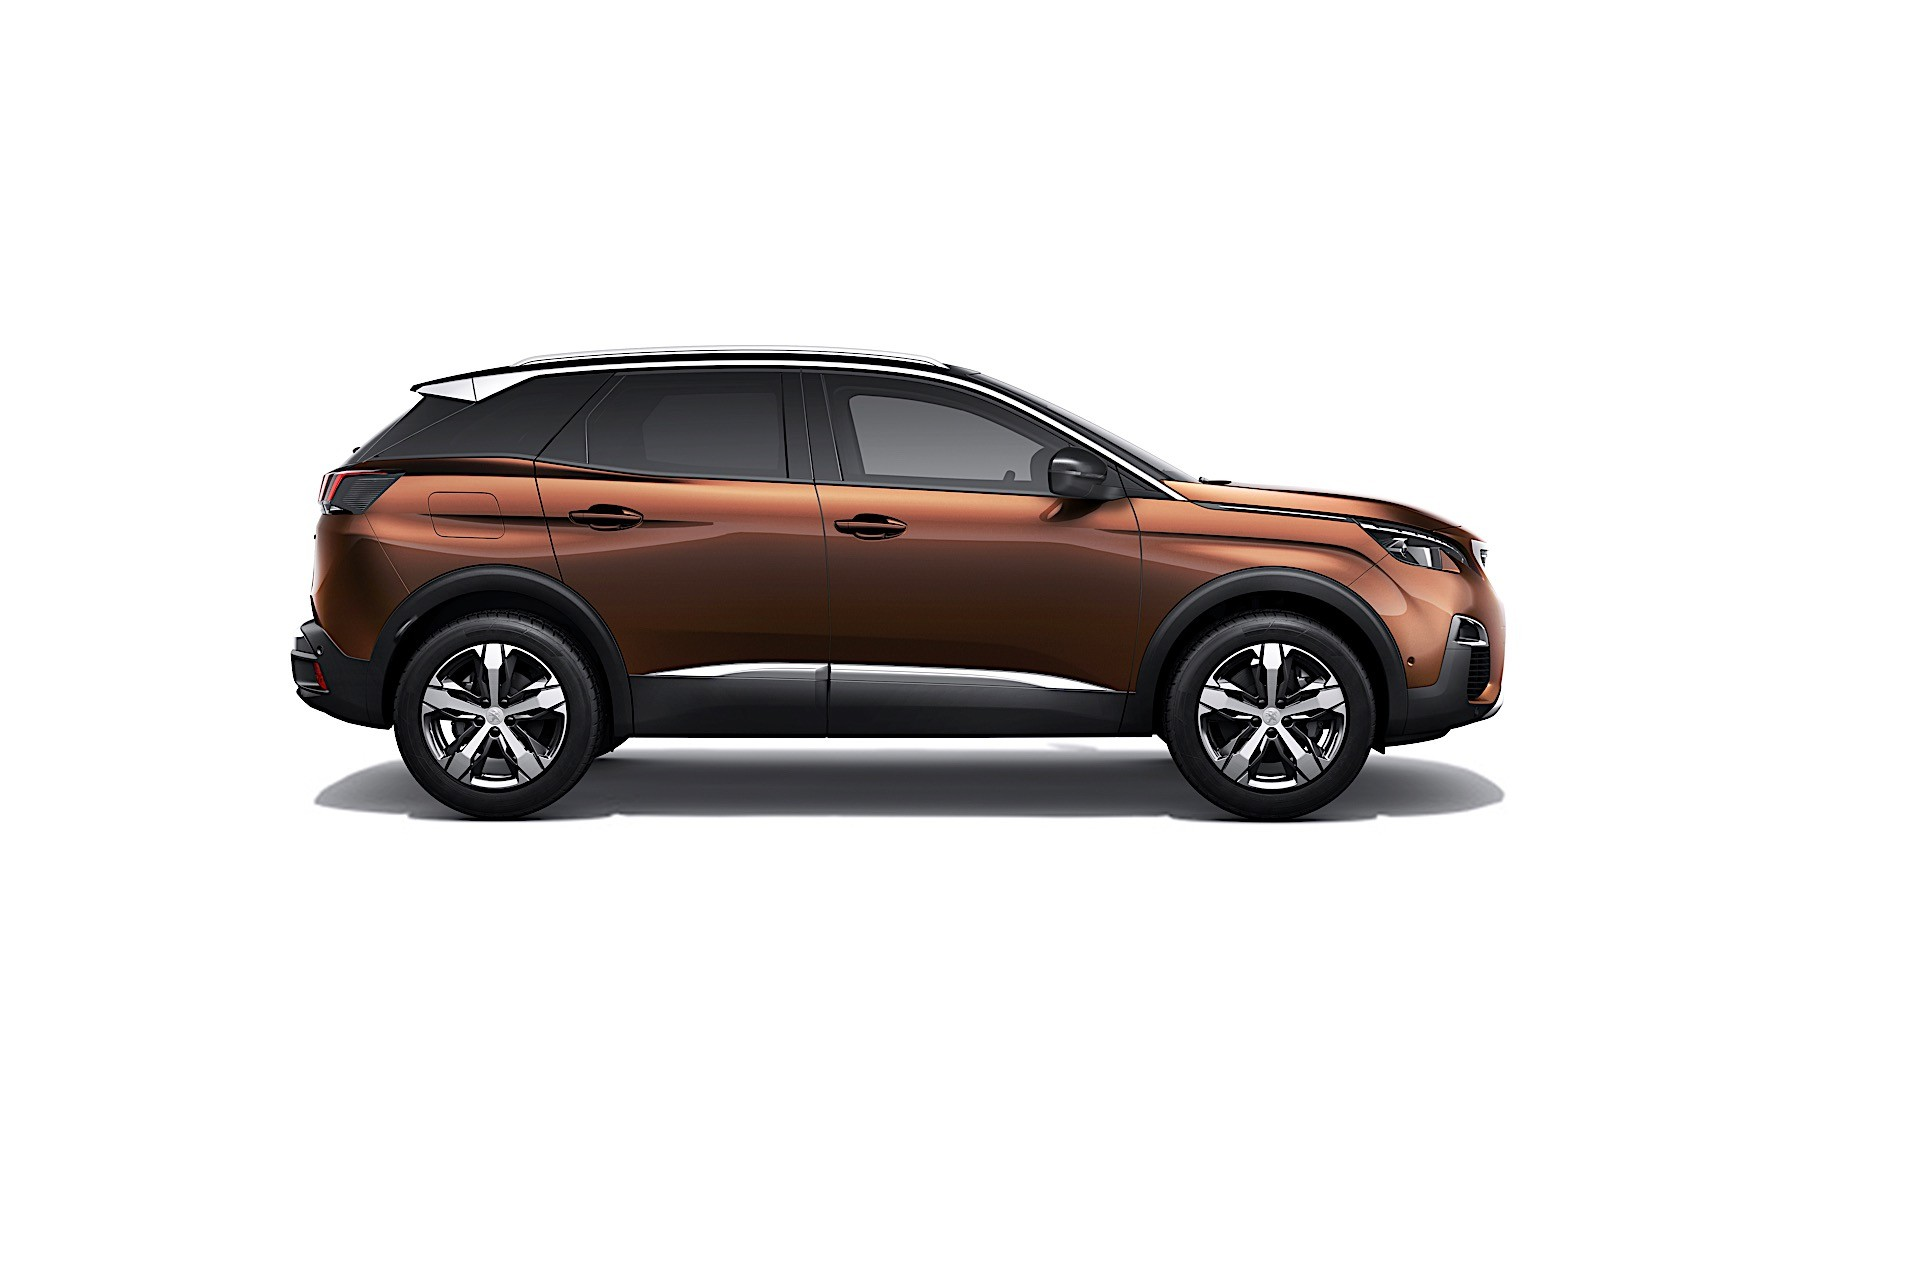 psa citroen 2018-6-7  introduction psa is one of the top six car makers in europe it sells cars in 2 brands - peugeot and citroen - which utilize high level of common platforms and parts but use different styling and packaging to distinguish.